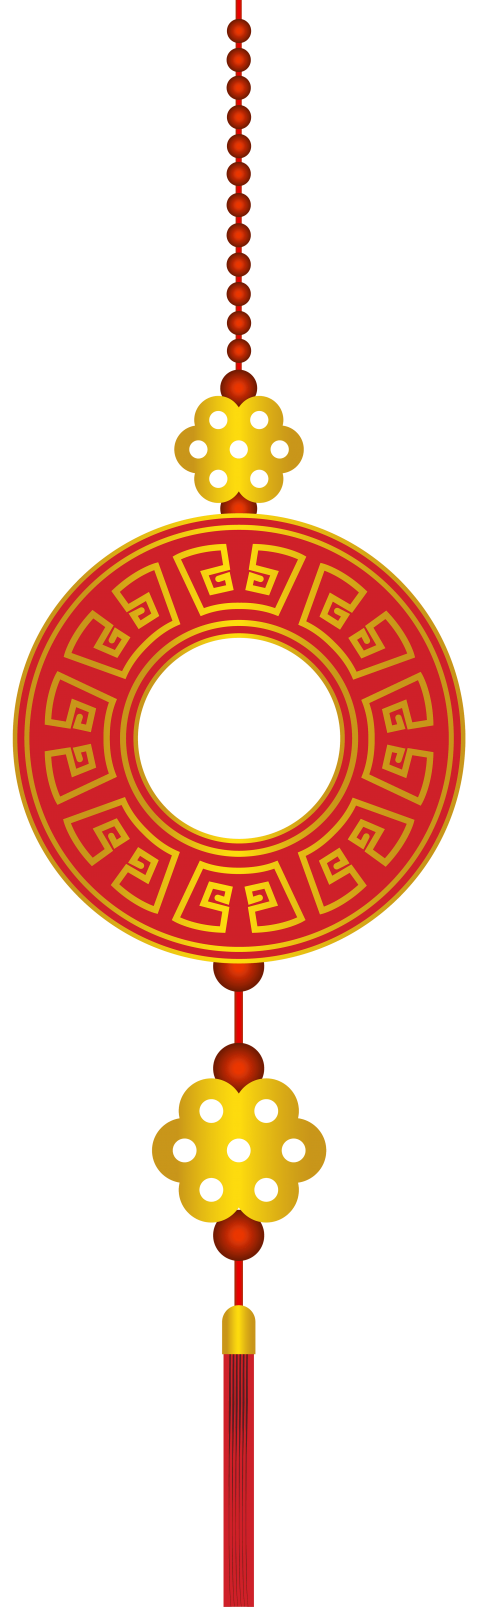 Transparent decoration chinese new year. Image royalty free